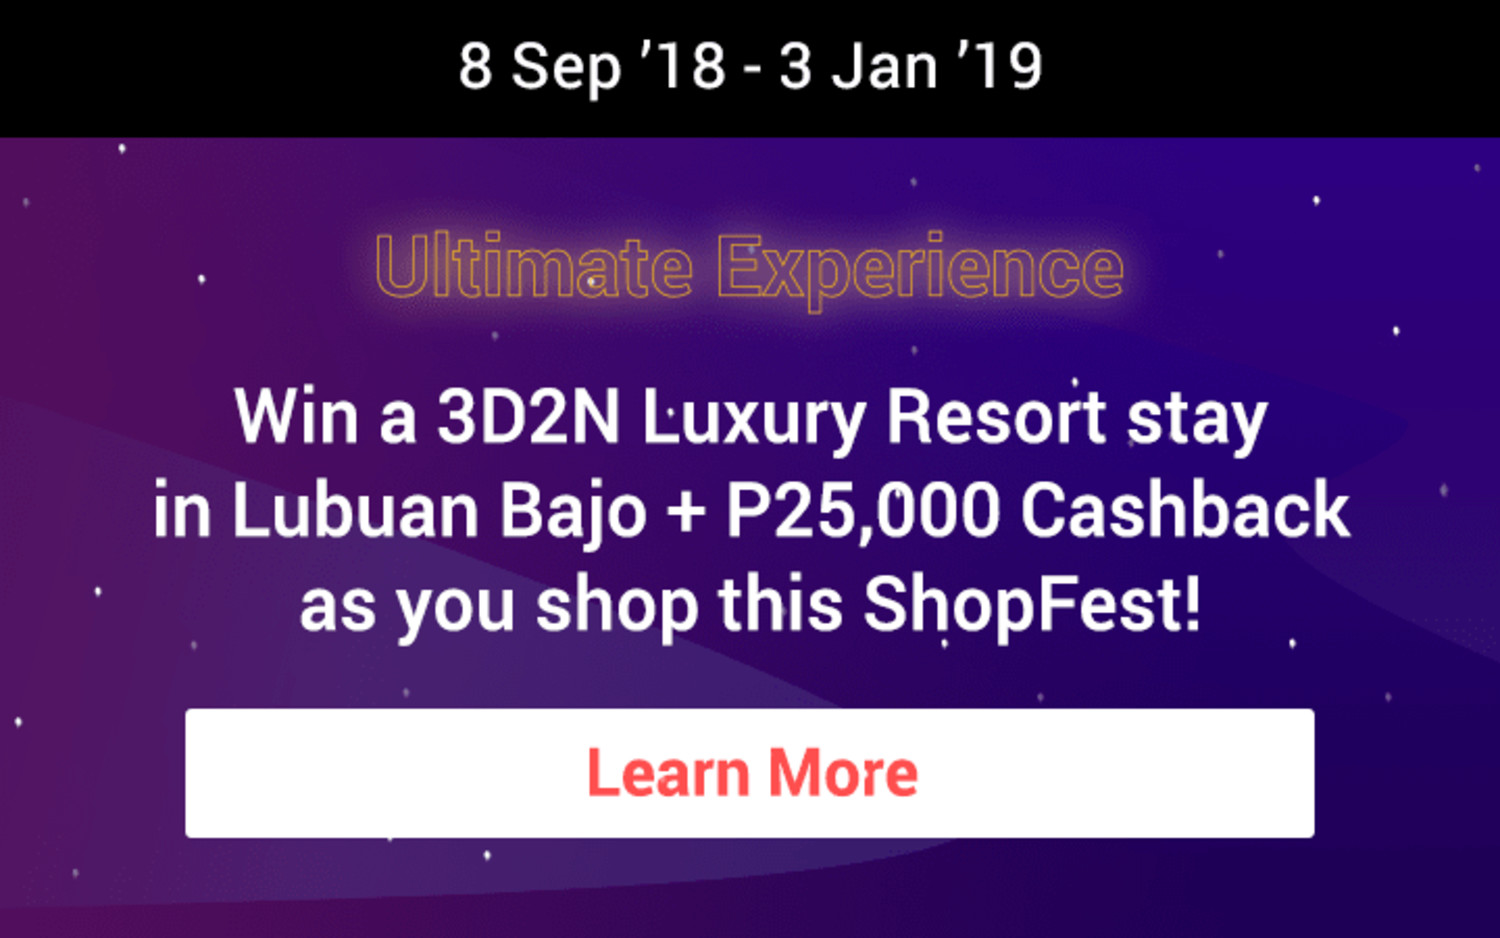 ShopFest | Win the Ultimate Experience